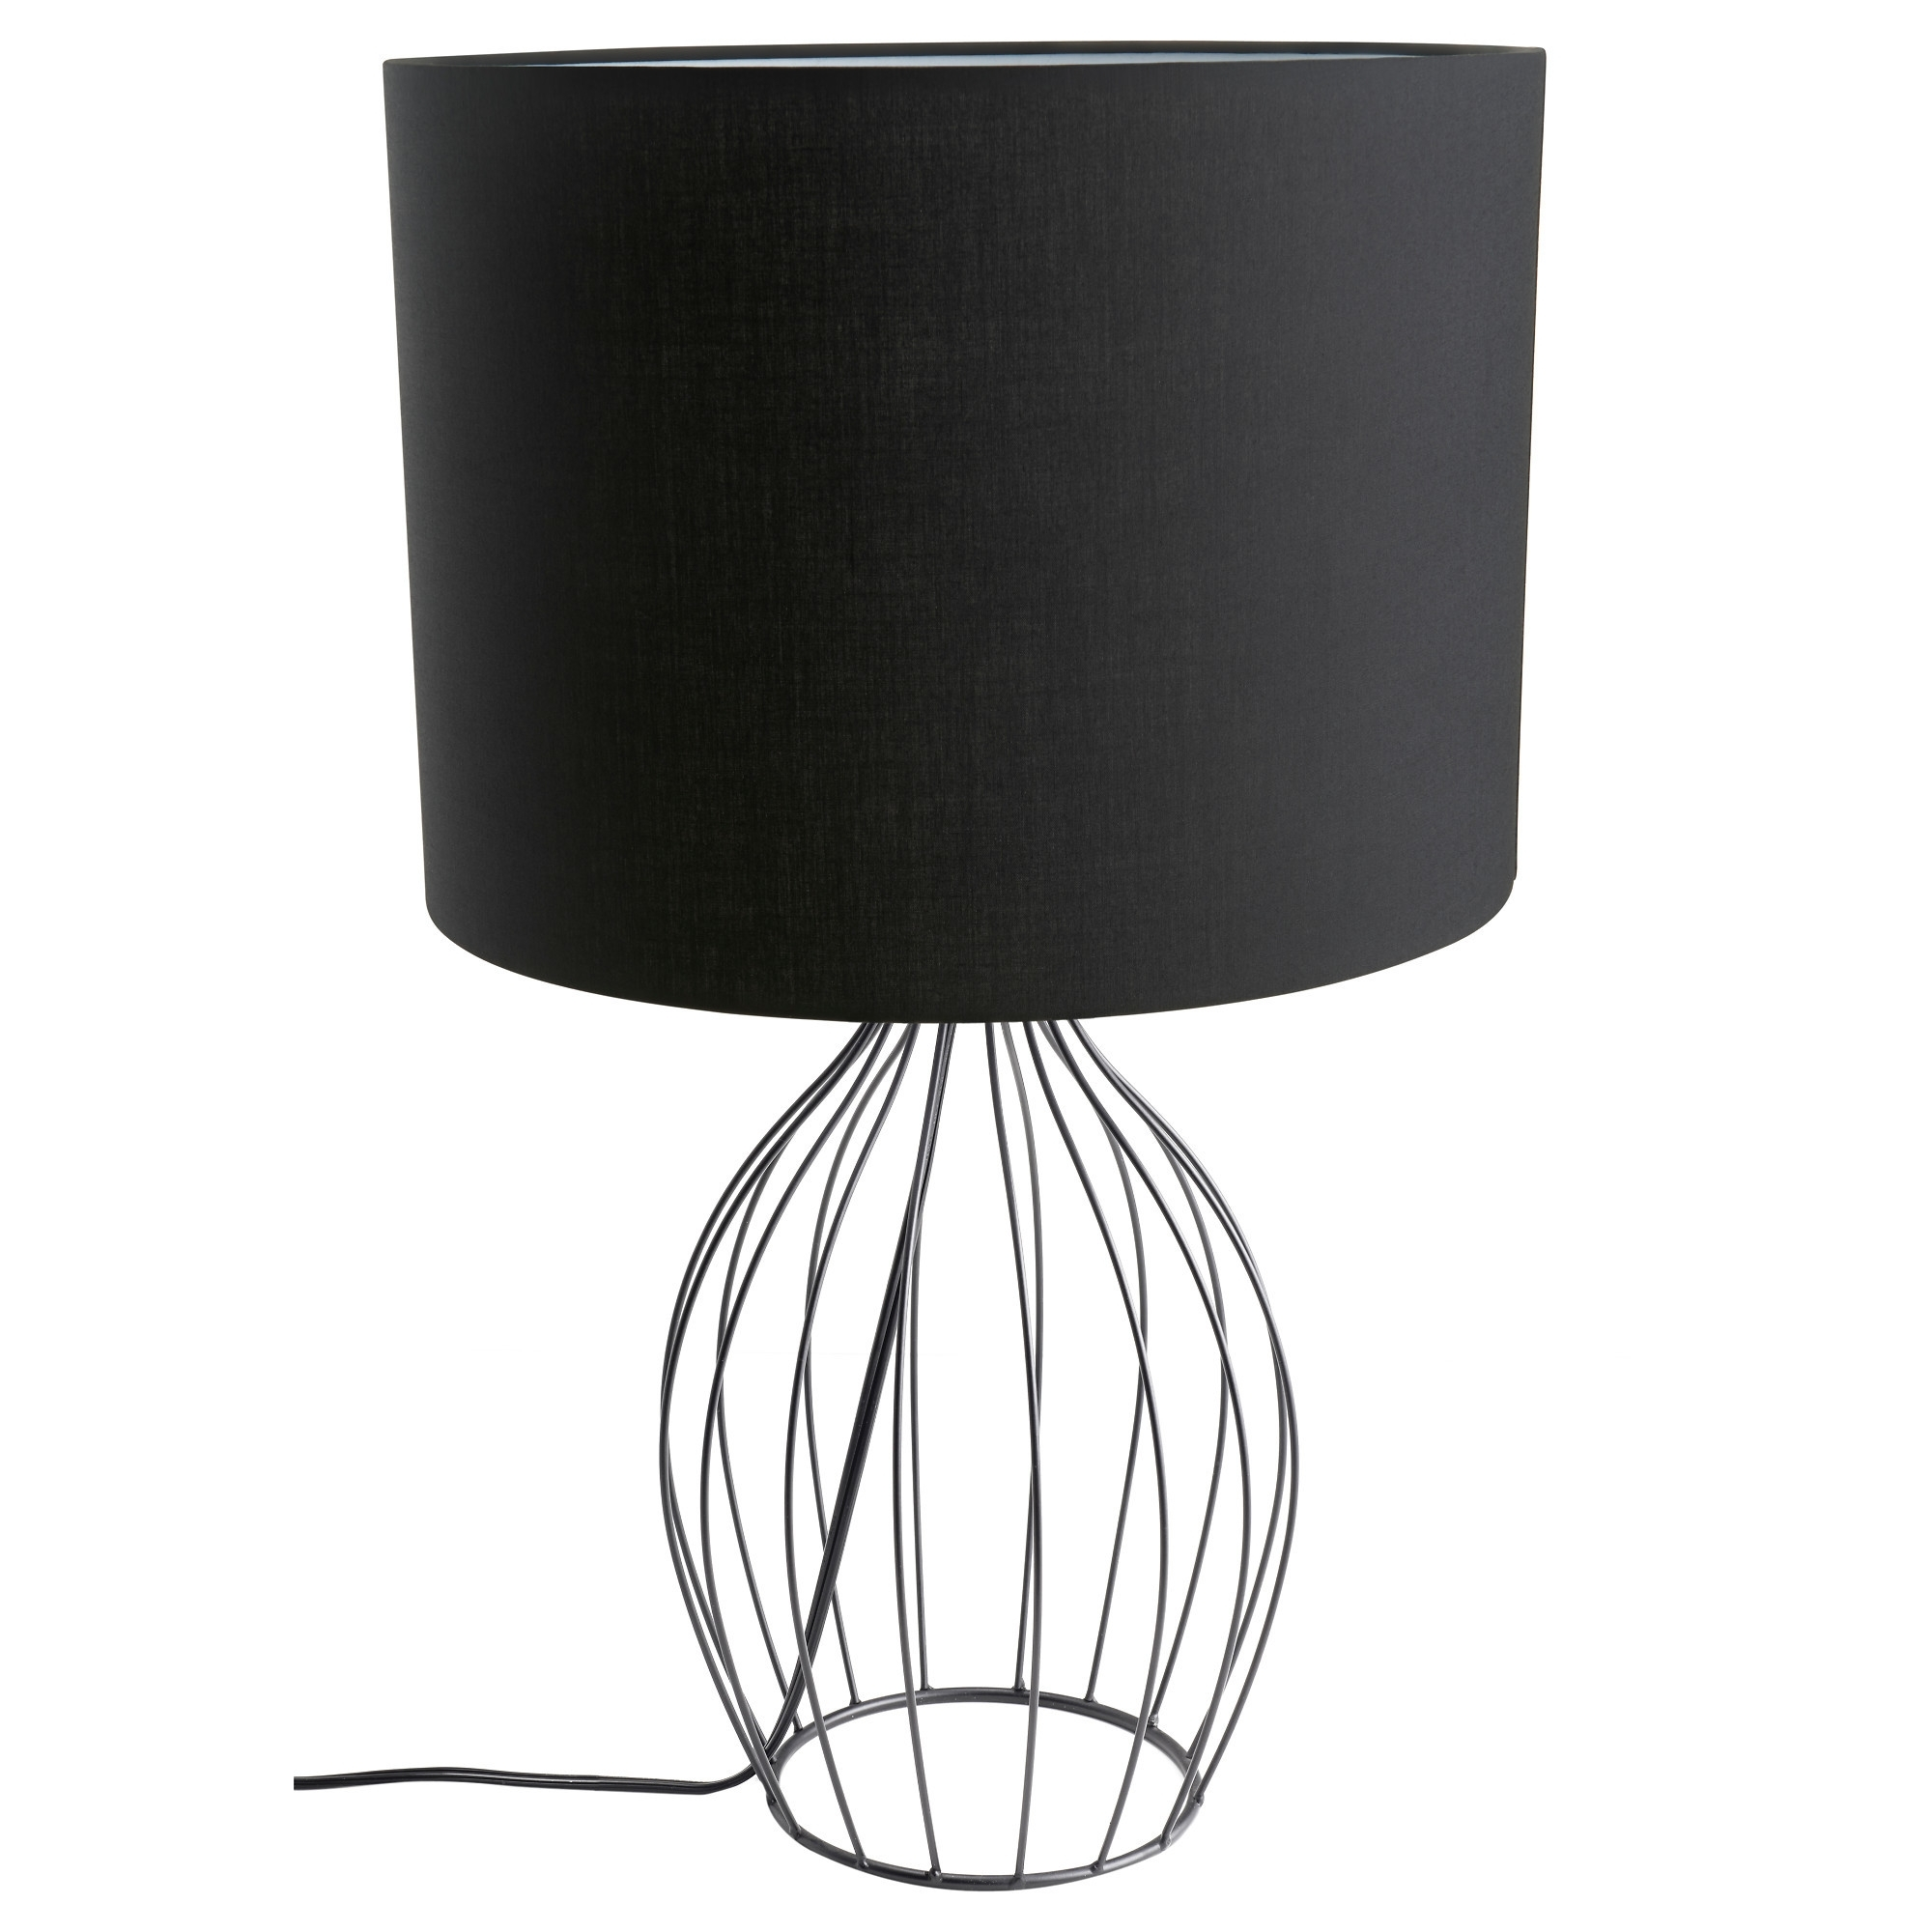 Preferred Living Room Side Table Lamps Table Lamps Ideas For Living Room Intended For Wrought Iron Living Room Table Lamps (View 6 of 20)